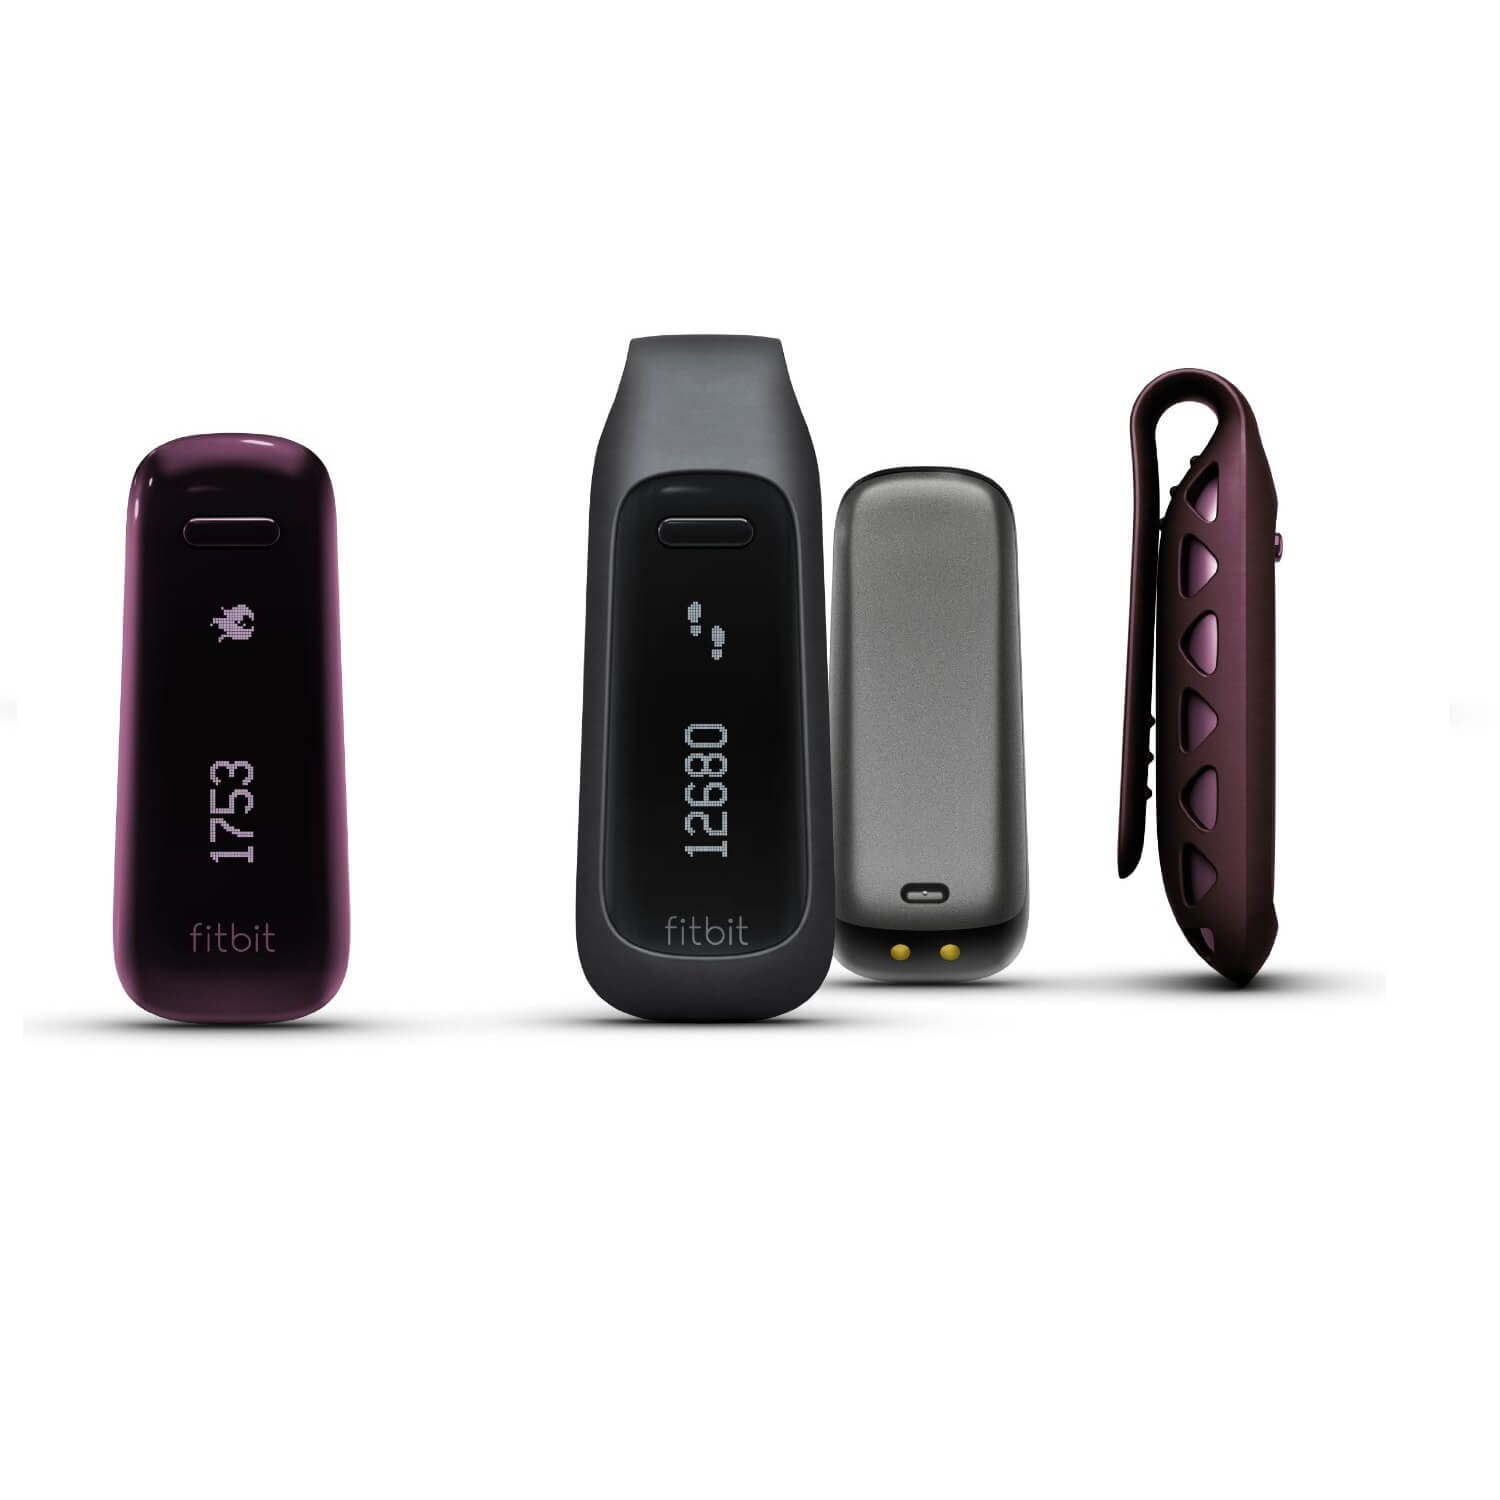 fitbit one review